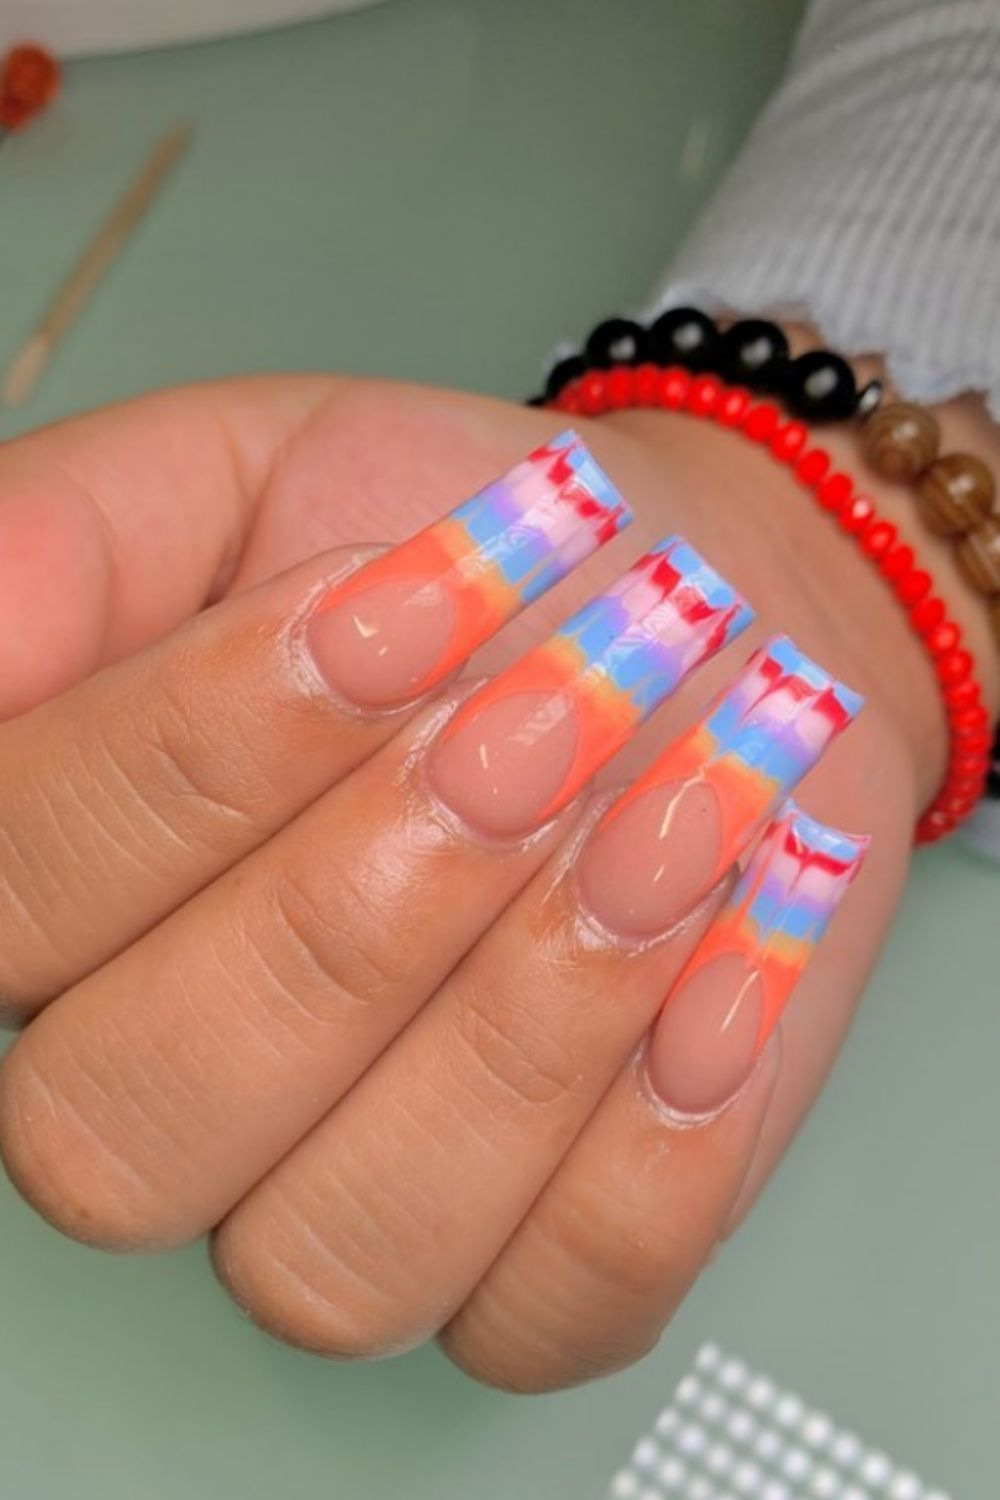 Hottest Tie Dye Nails to Fit Your Beach Look This Summer